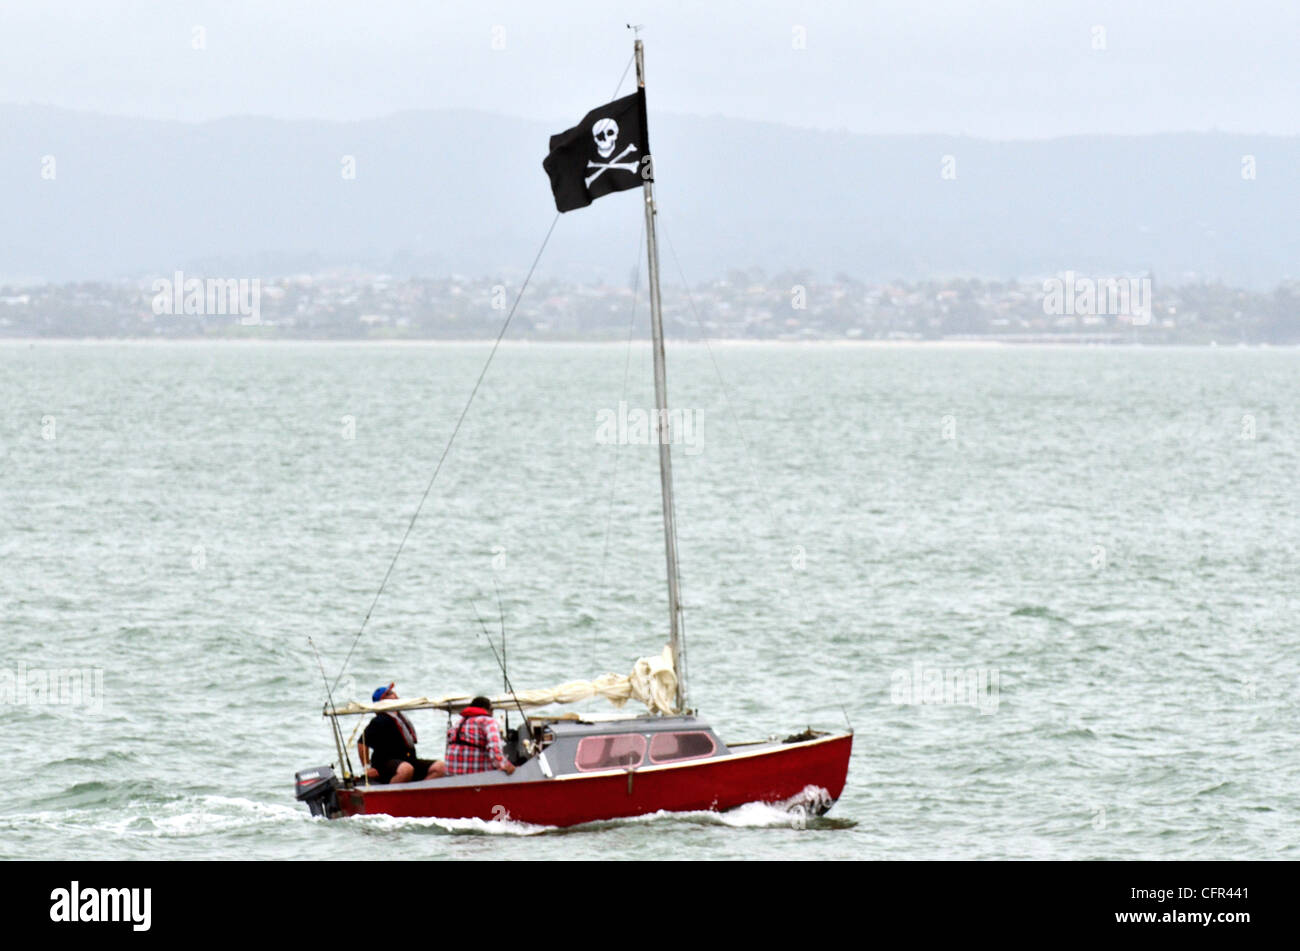 A sail boat with Jolly Roger - Flag of a Pirate skull and crossbones. - Stock Image